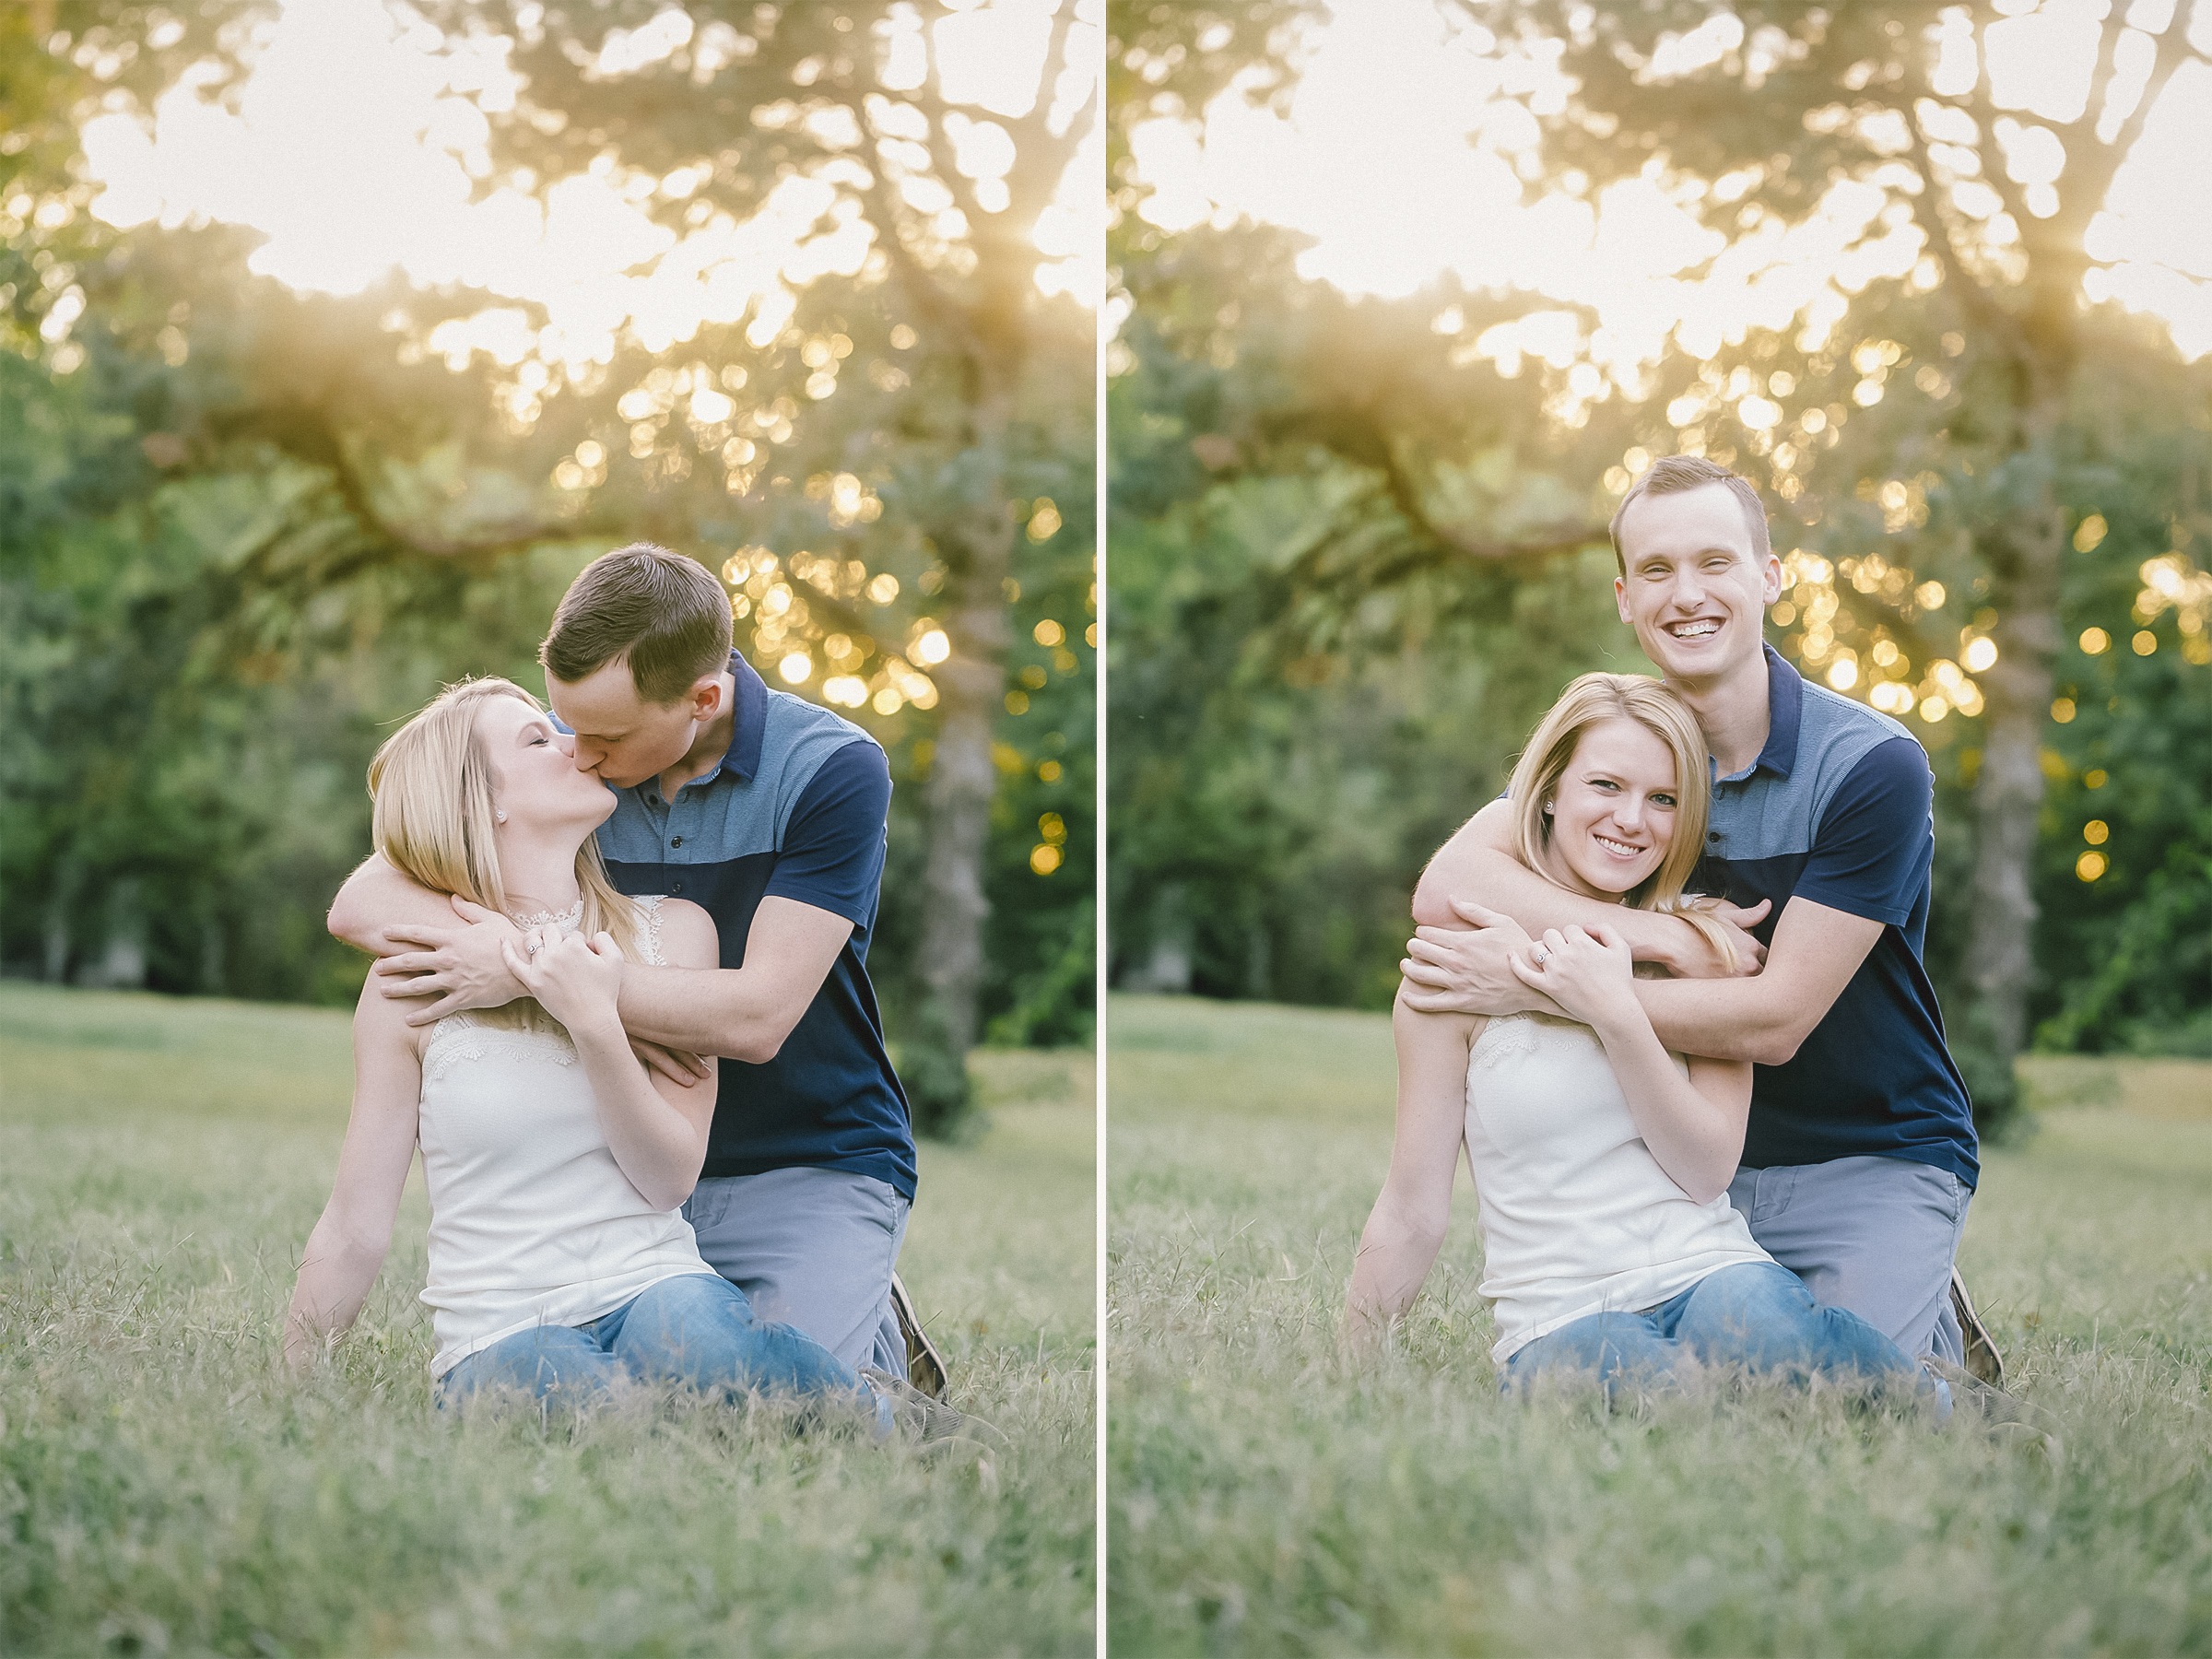 Rebecca_K_Clark_Photography_Engagement_Gallery_Web-16.JPG